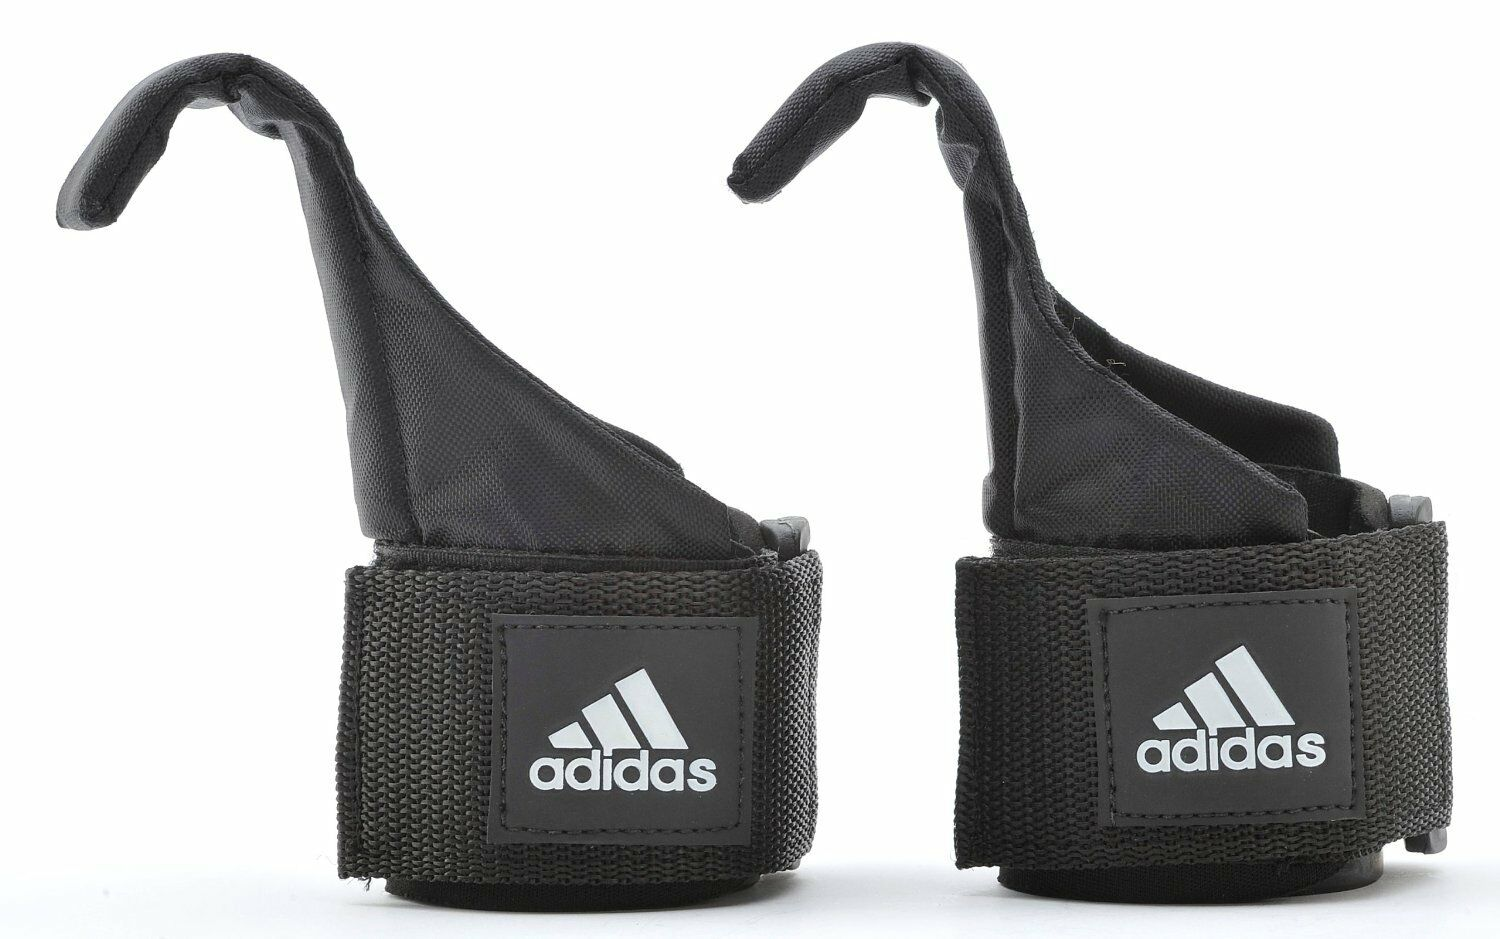 Adidas  Gym Weight Lifting Hook Straps Hand Bar Wrist Brace Support Grip One Size  store online